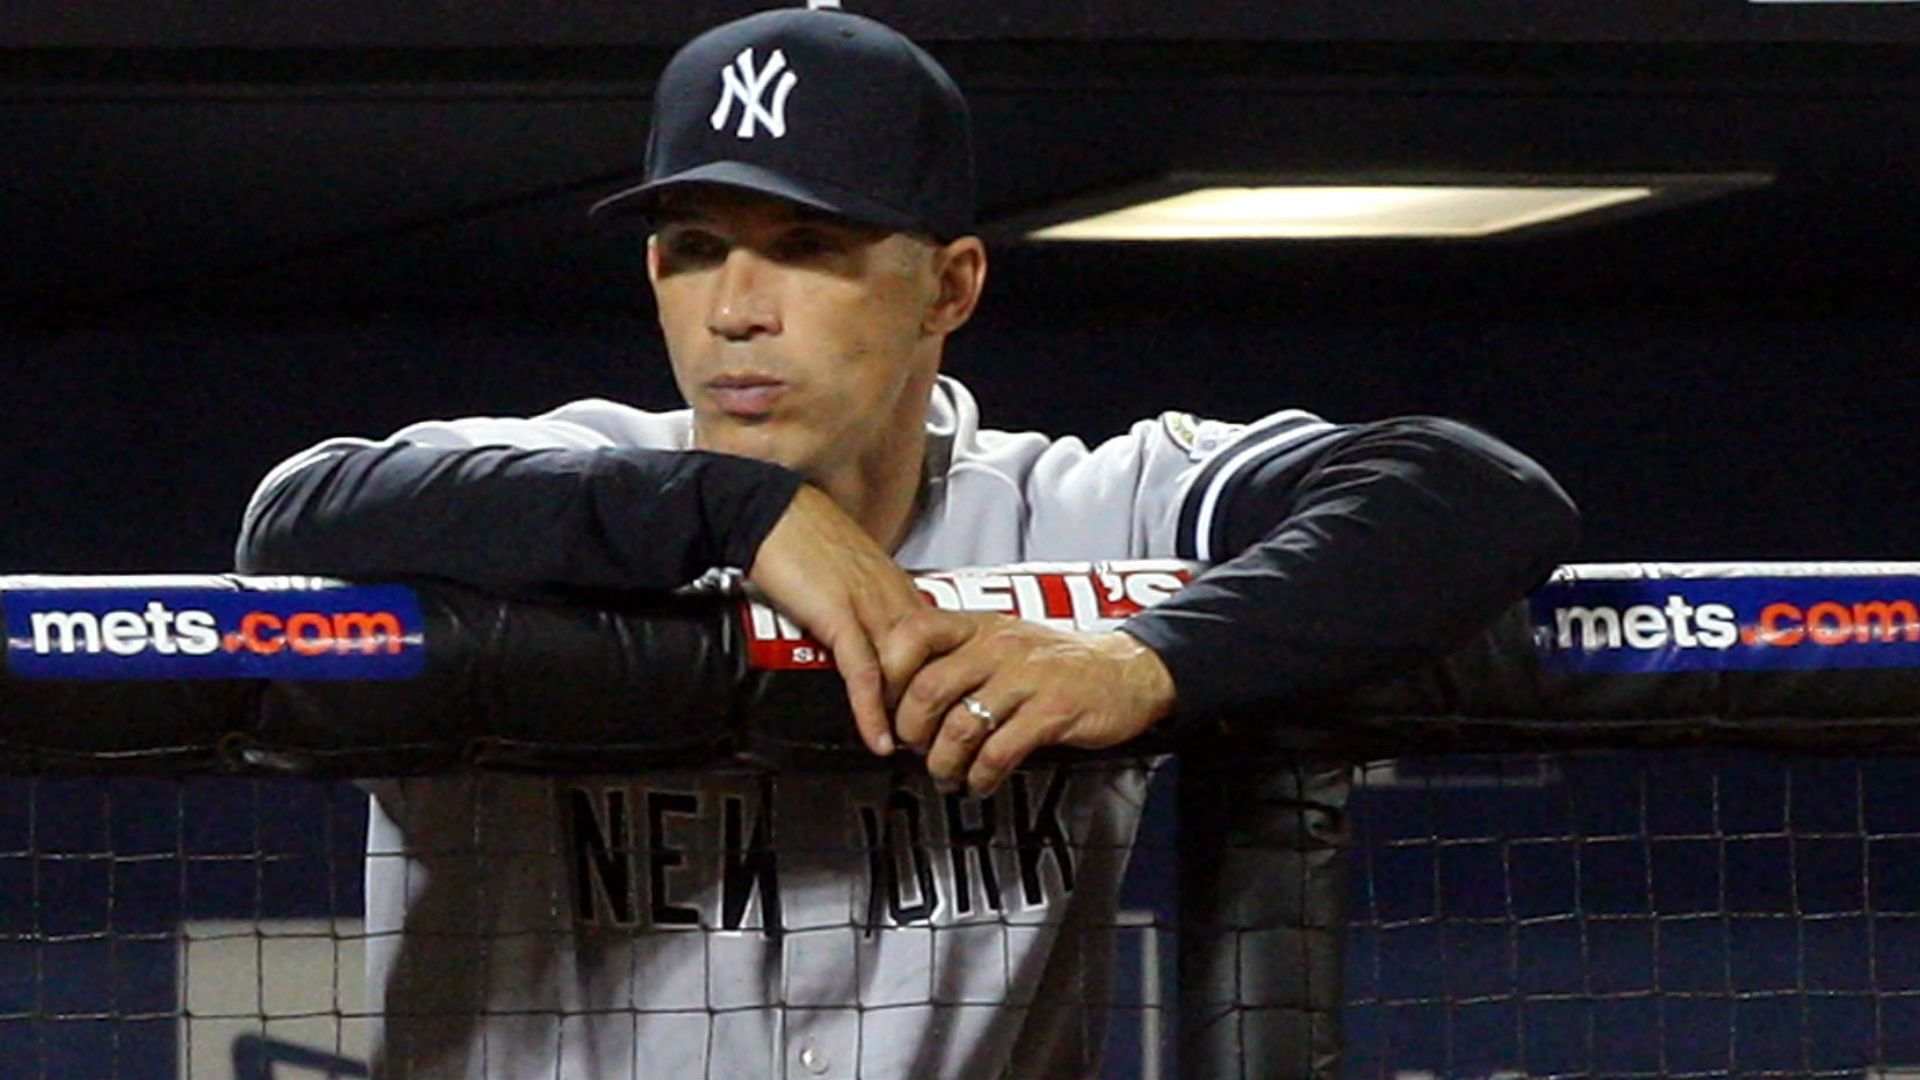 Mets manager search: Joe Girardi, Carlos Beltran, Mike Bell to be interviewed